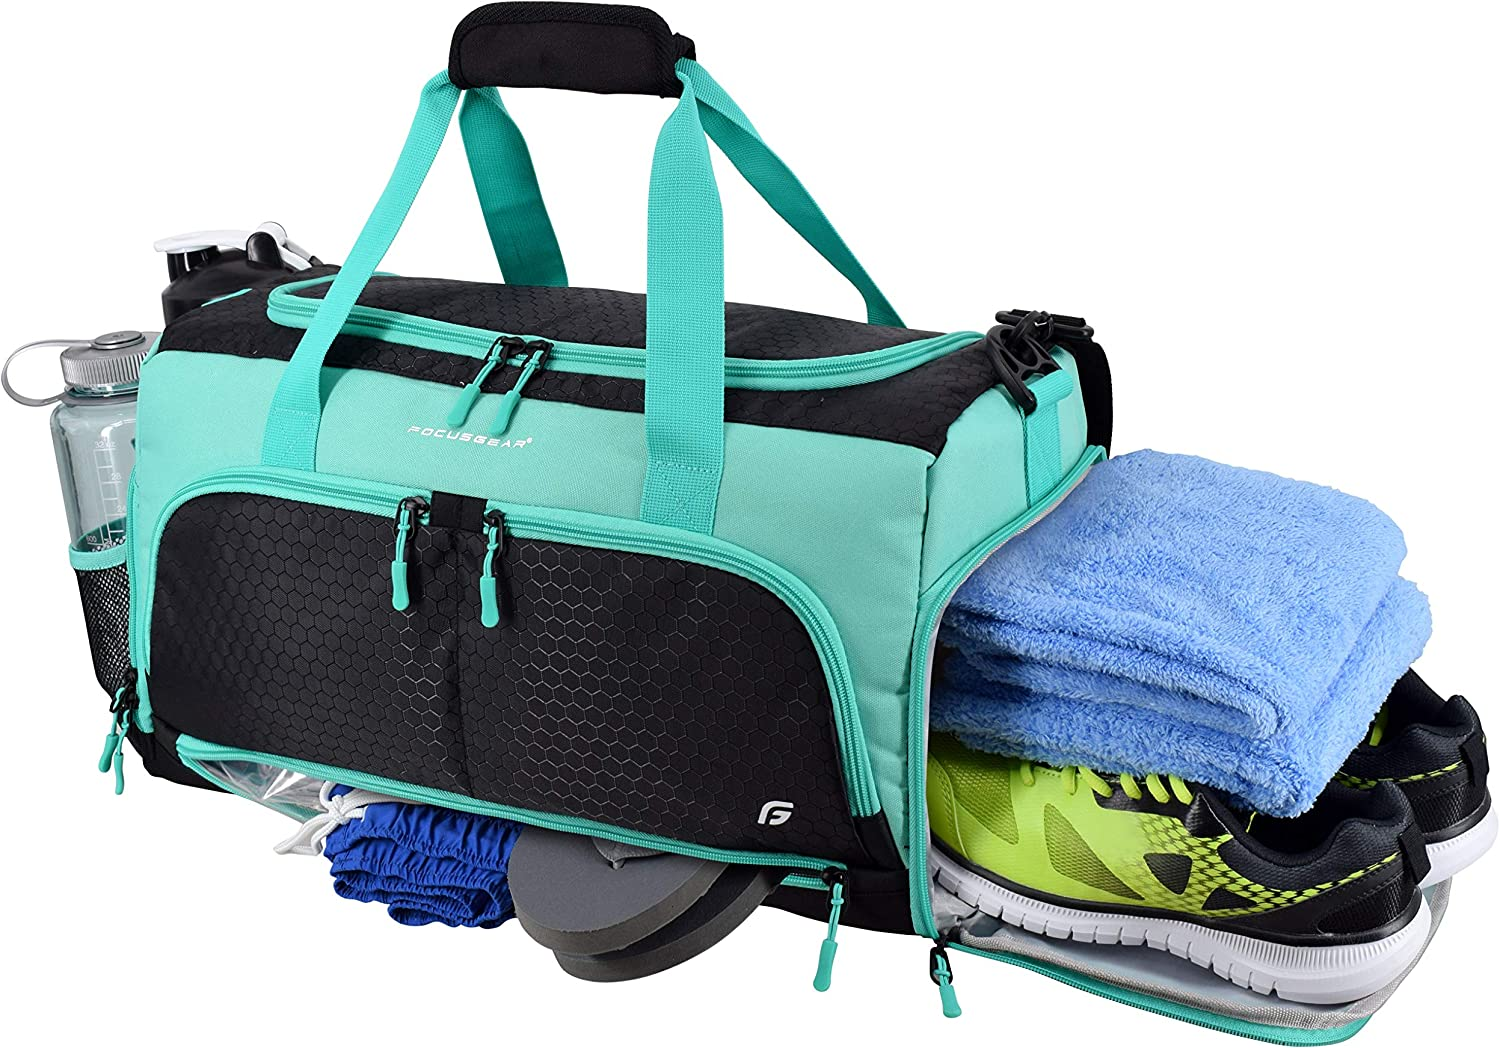 "Ultimate Gym Bag 2.0: The Durable Crowdsource Designed Duffel Bag with 10 Optimal Compartments Including Water Resistant Pouch (Teal, Small (15""))"